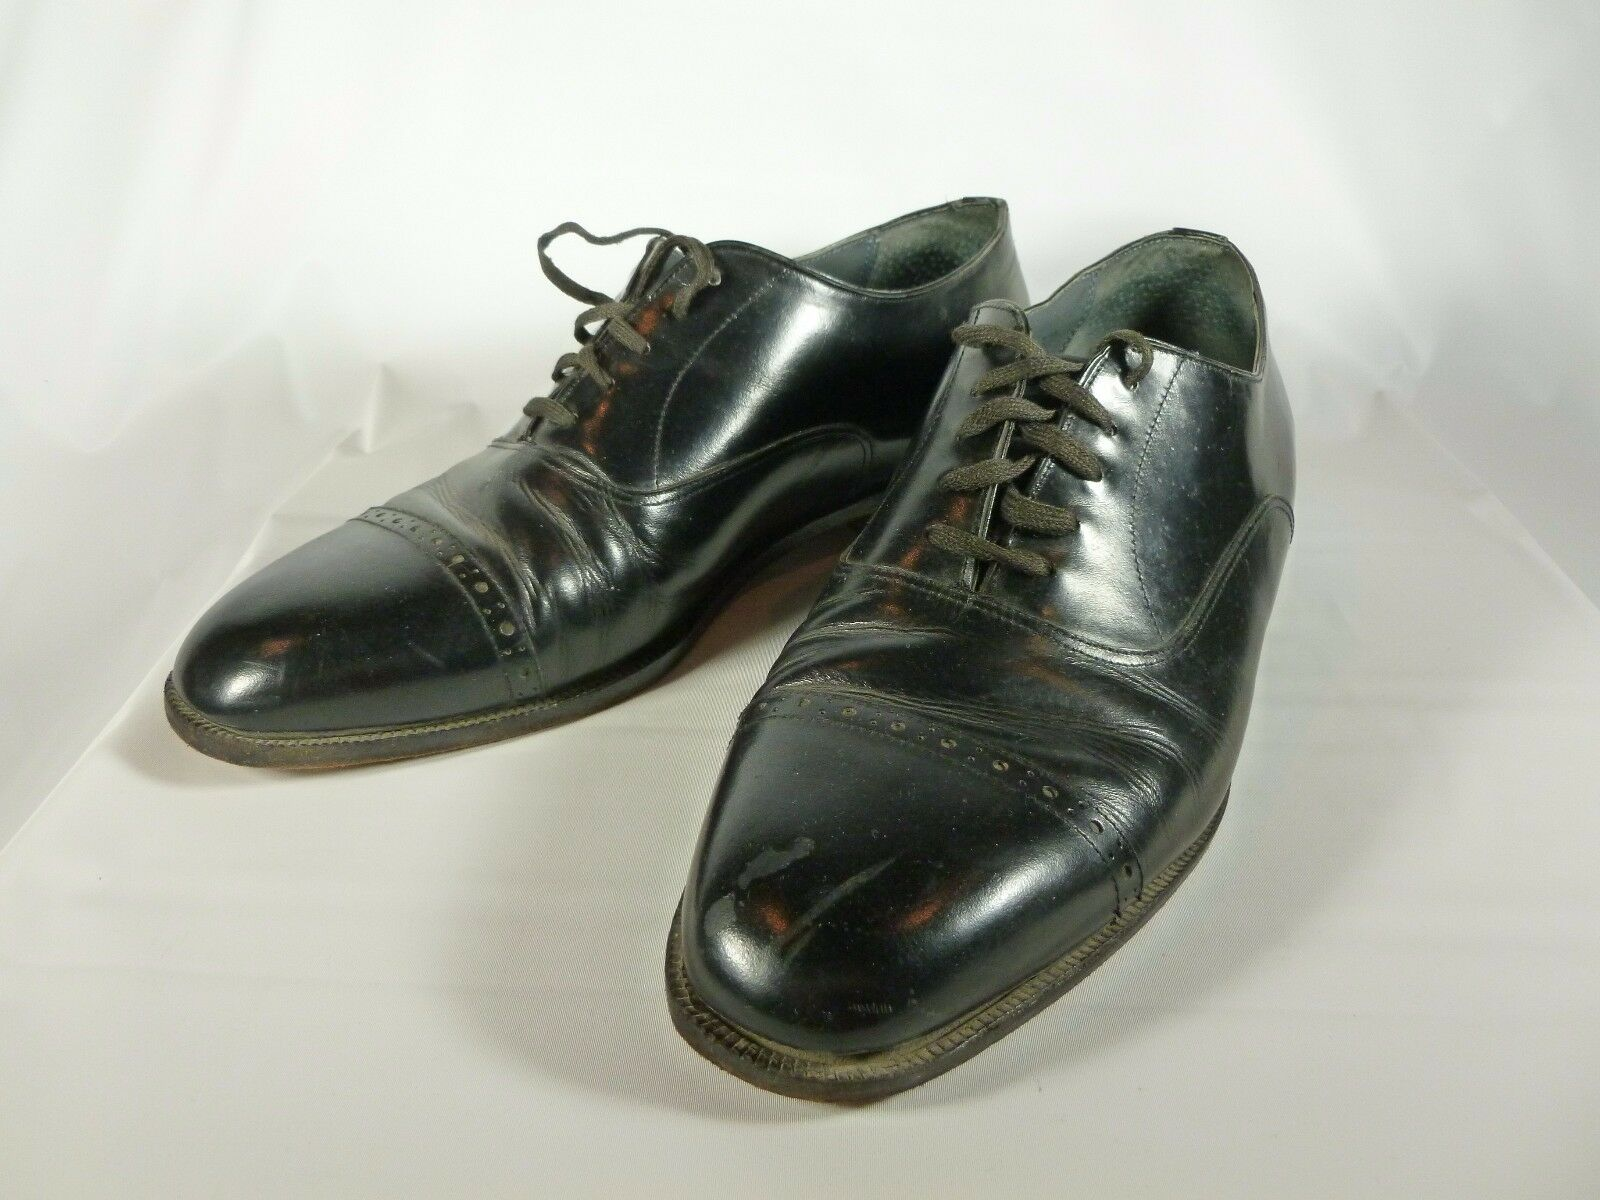 Mens Black Leather Natural Leader John Weitz Cap Toe shoes Size 10D Model 46571